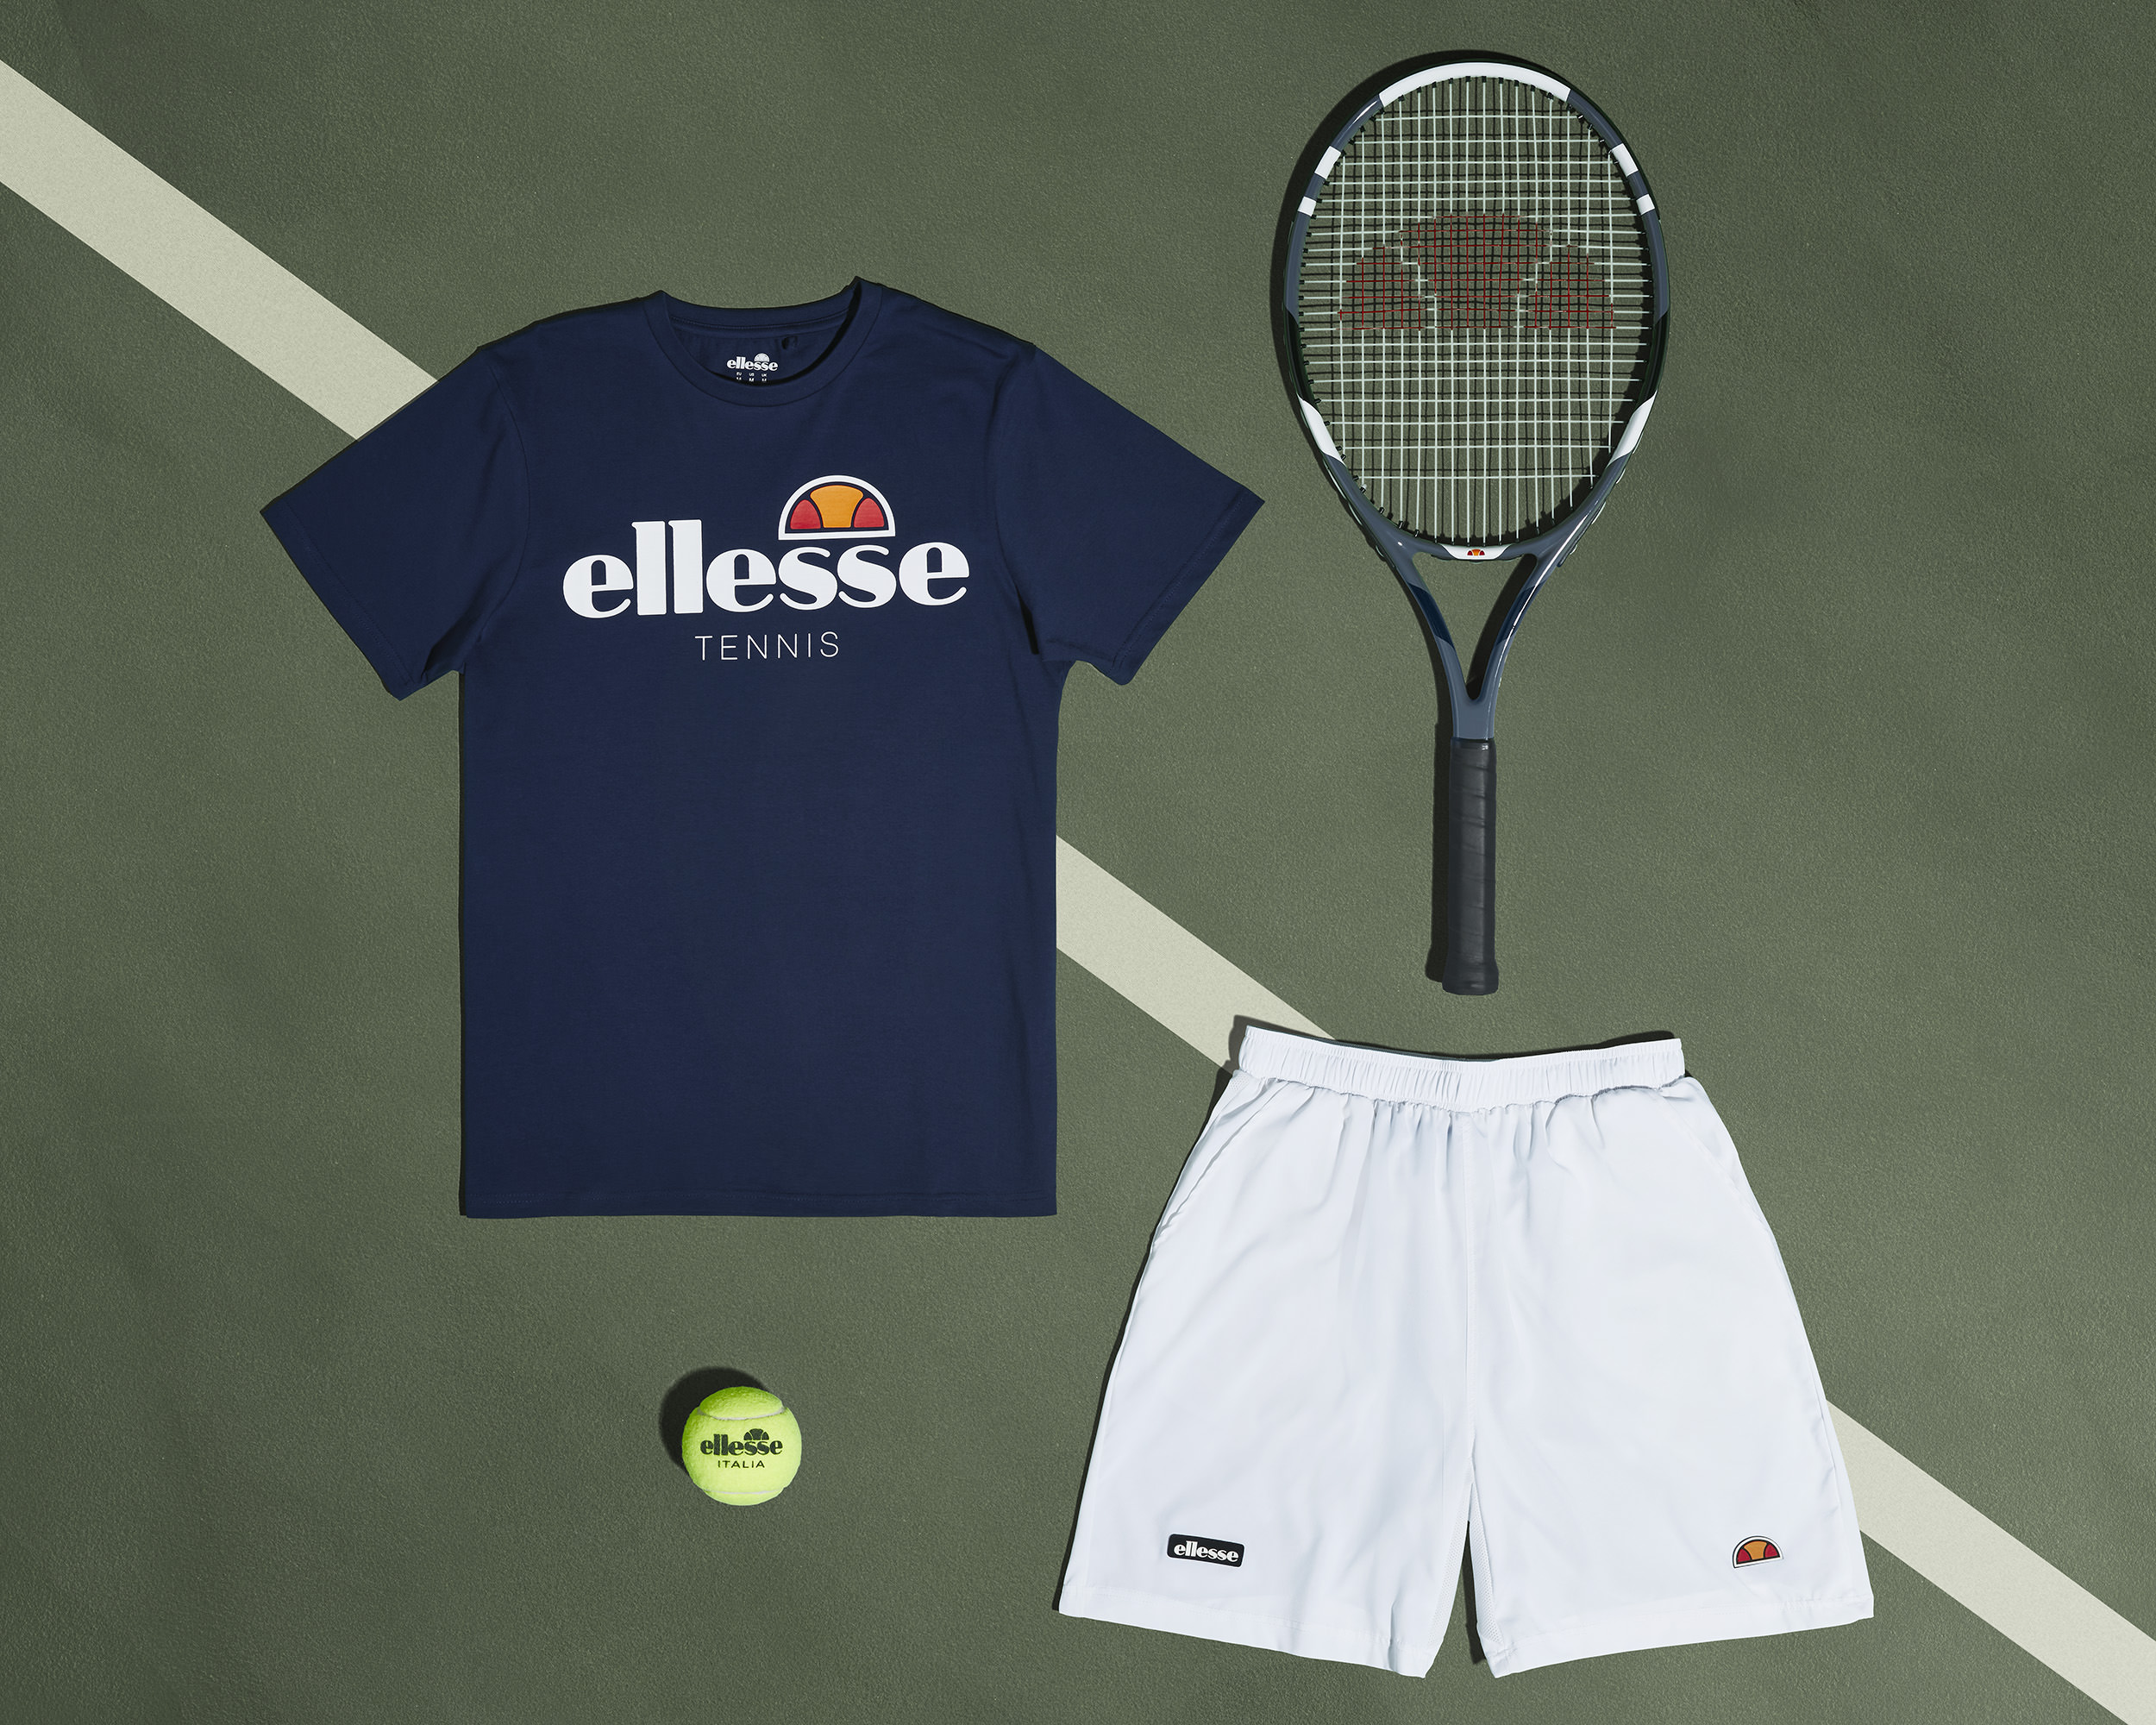 ellesse_outfit04